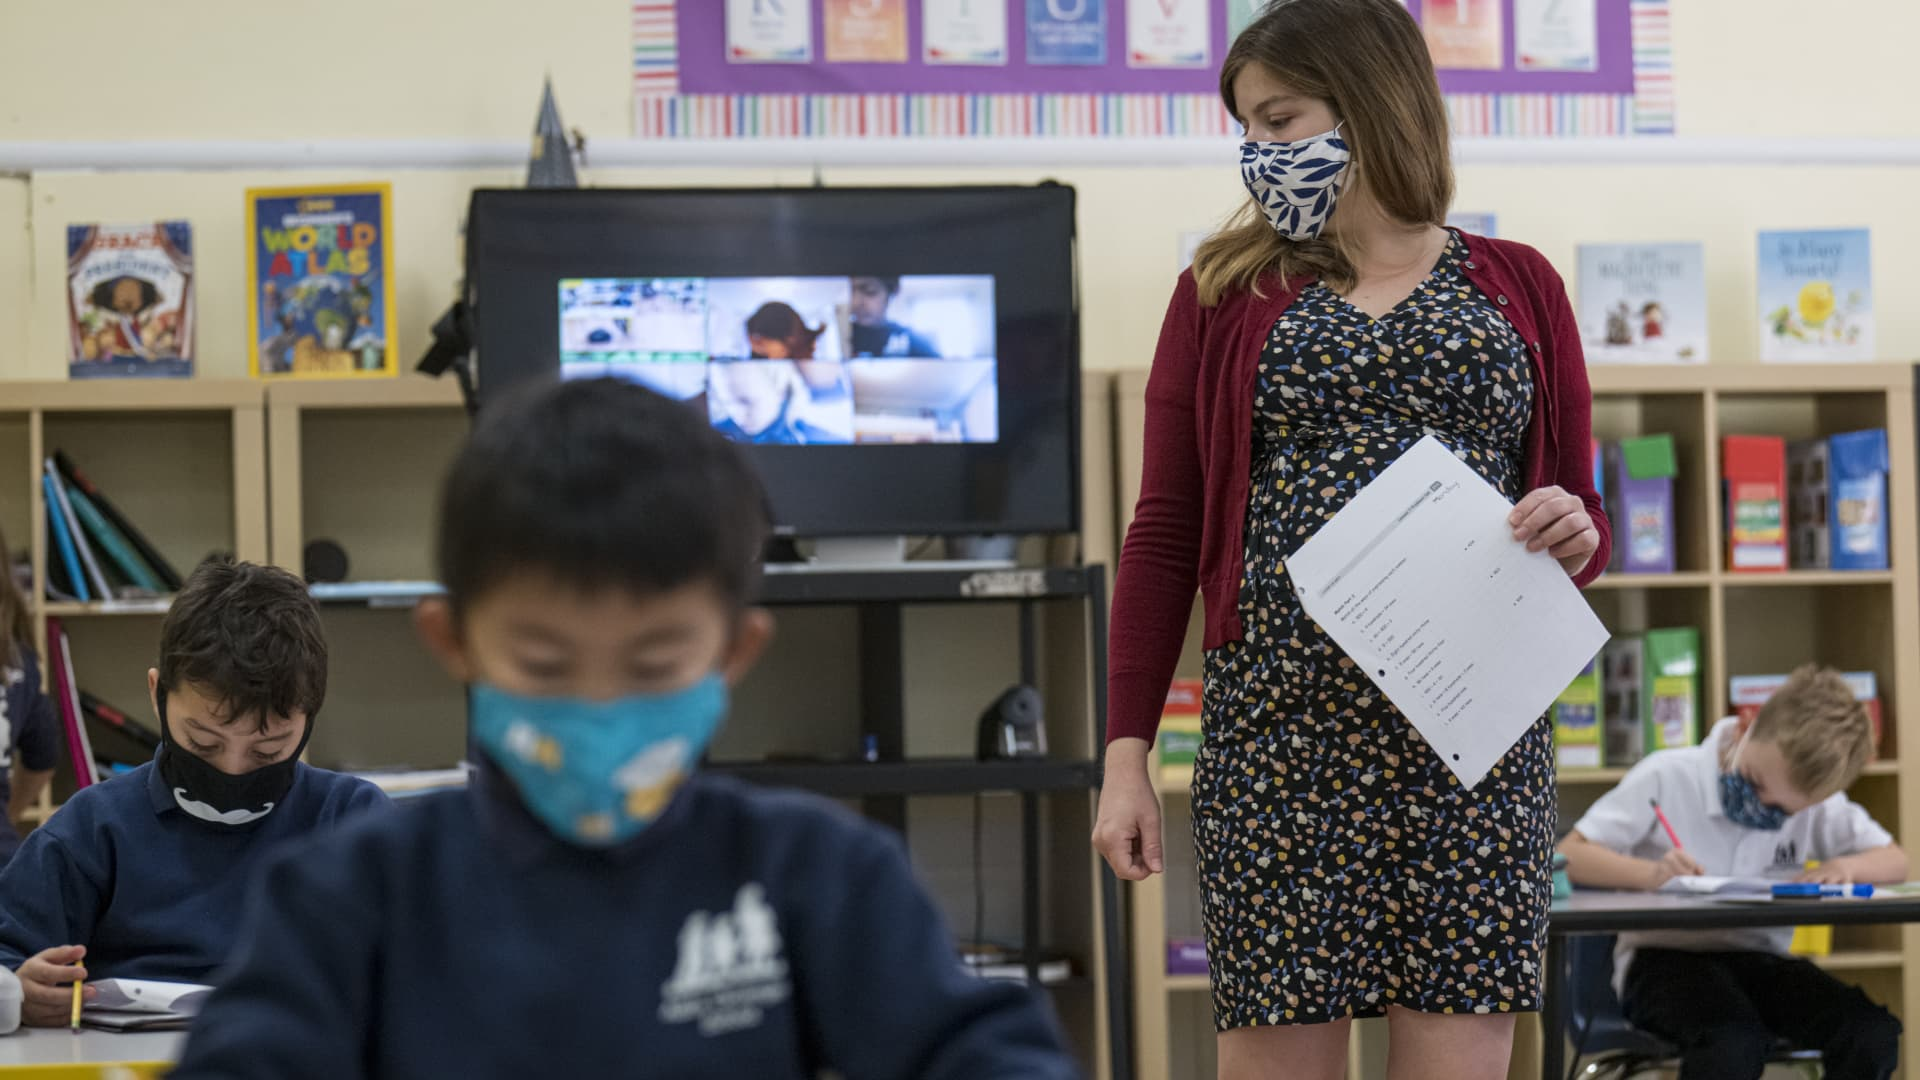 A teacher wearing a protective mask walks around the classroom during a lesson at an elementary school in San Francisco, California, U.S., on Monday, Oct. 5, 2020.